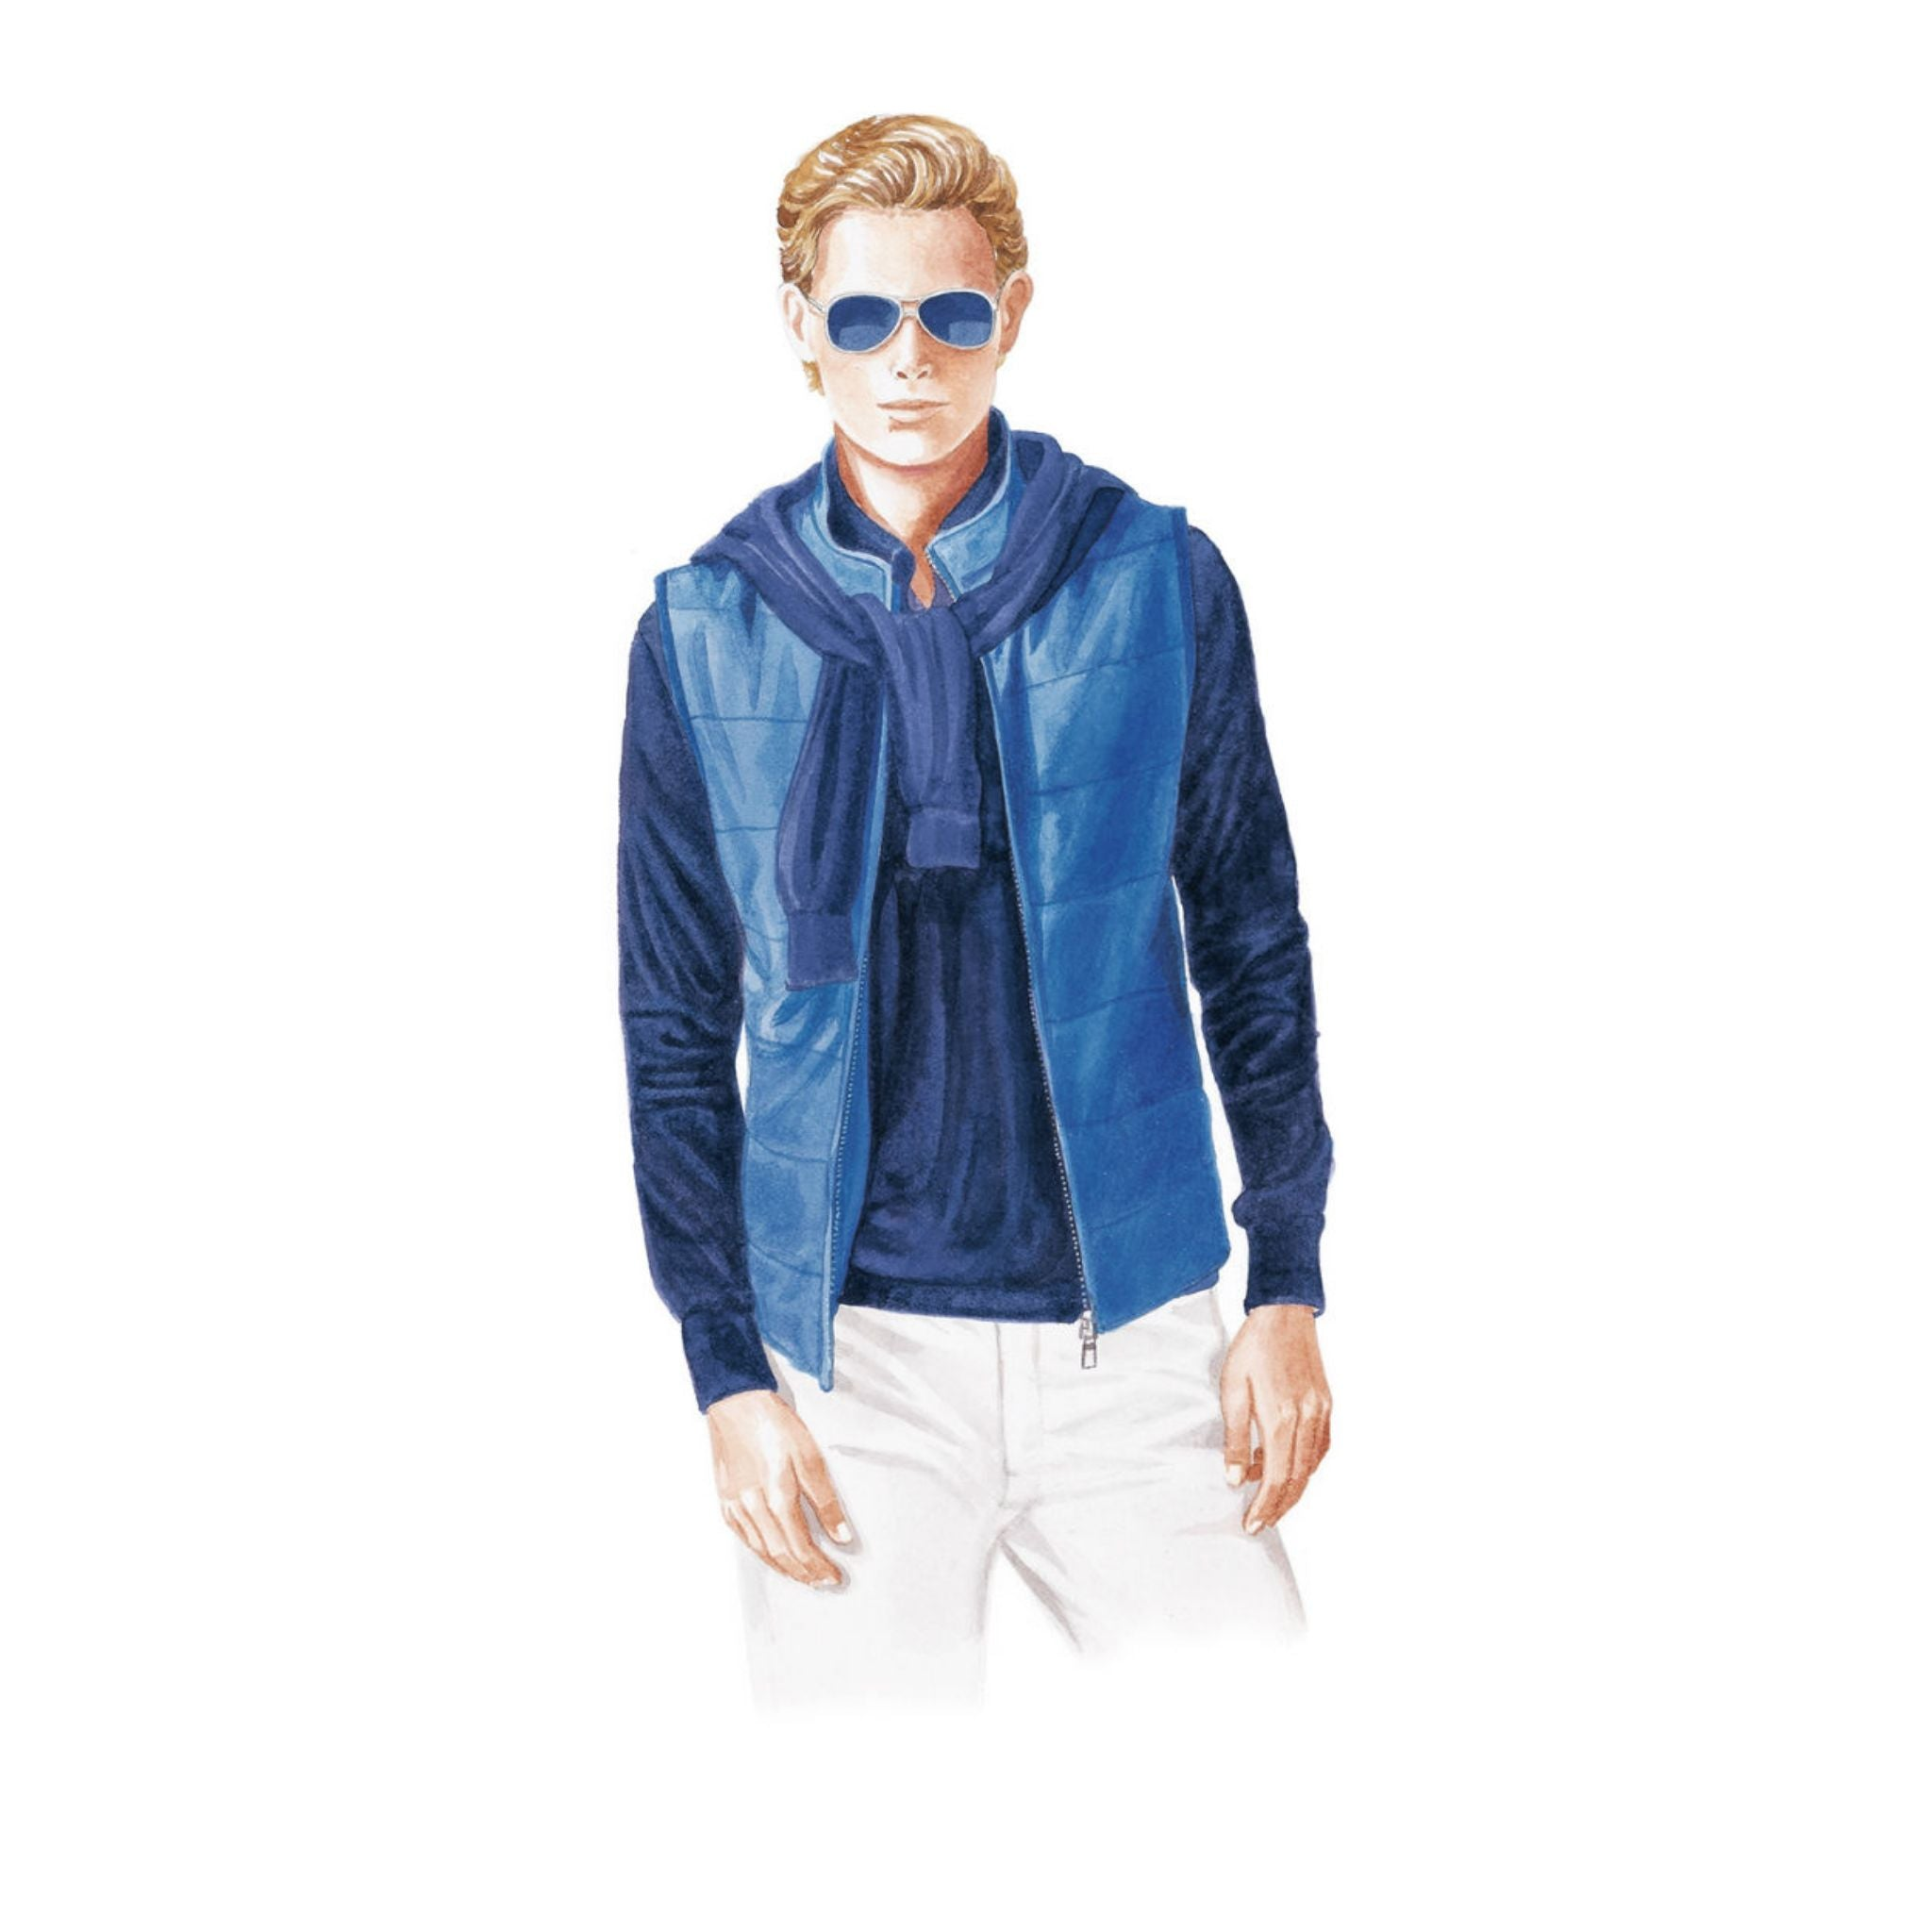 Loro Piana spring and summer 2016 sport vest